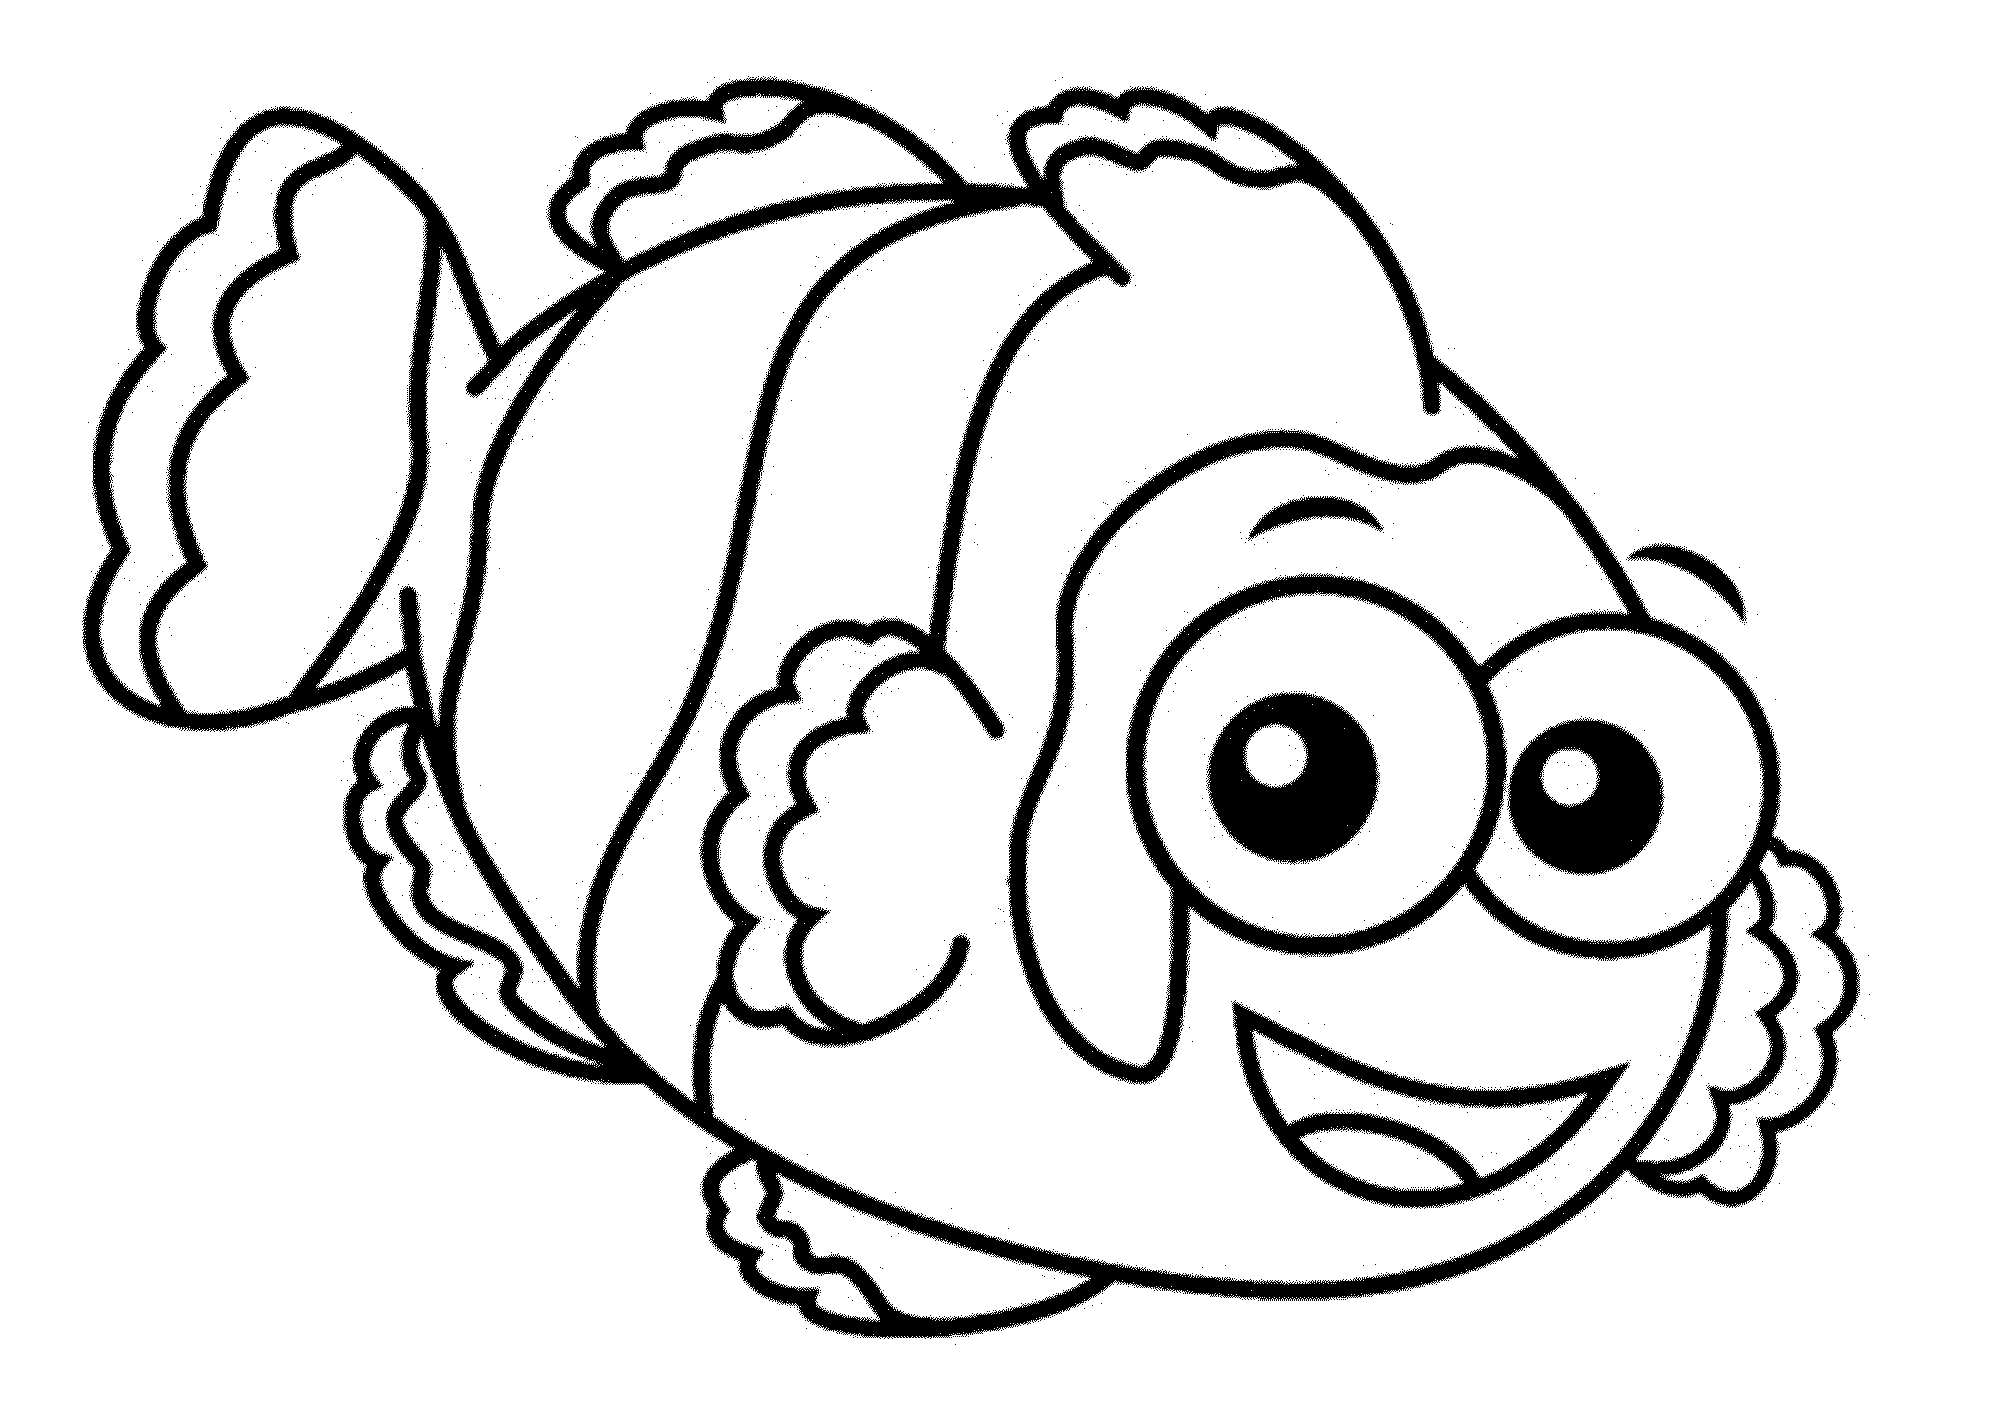 fish coloring pages for kids - photo#20